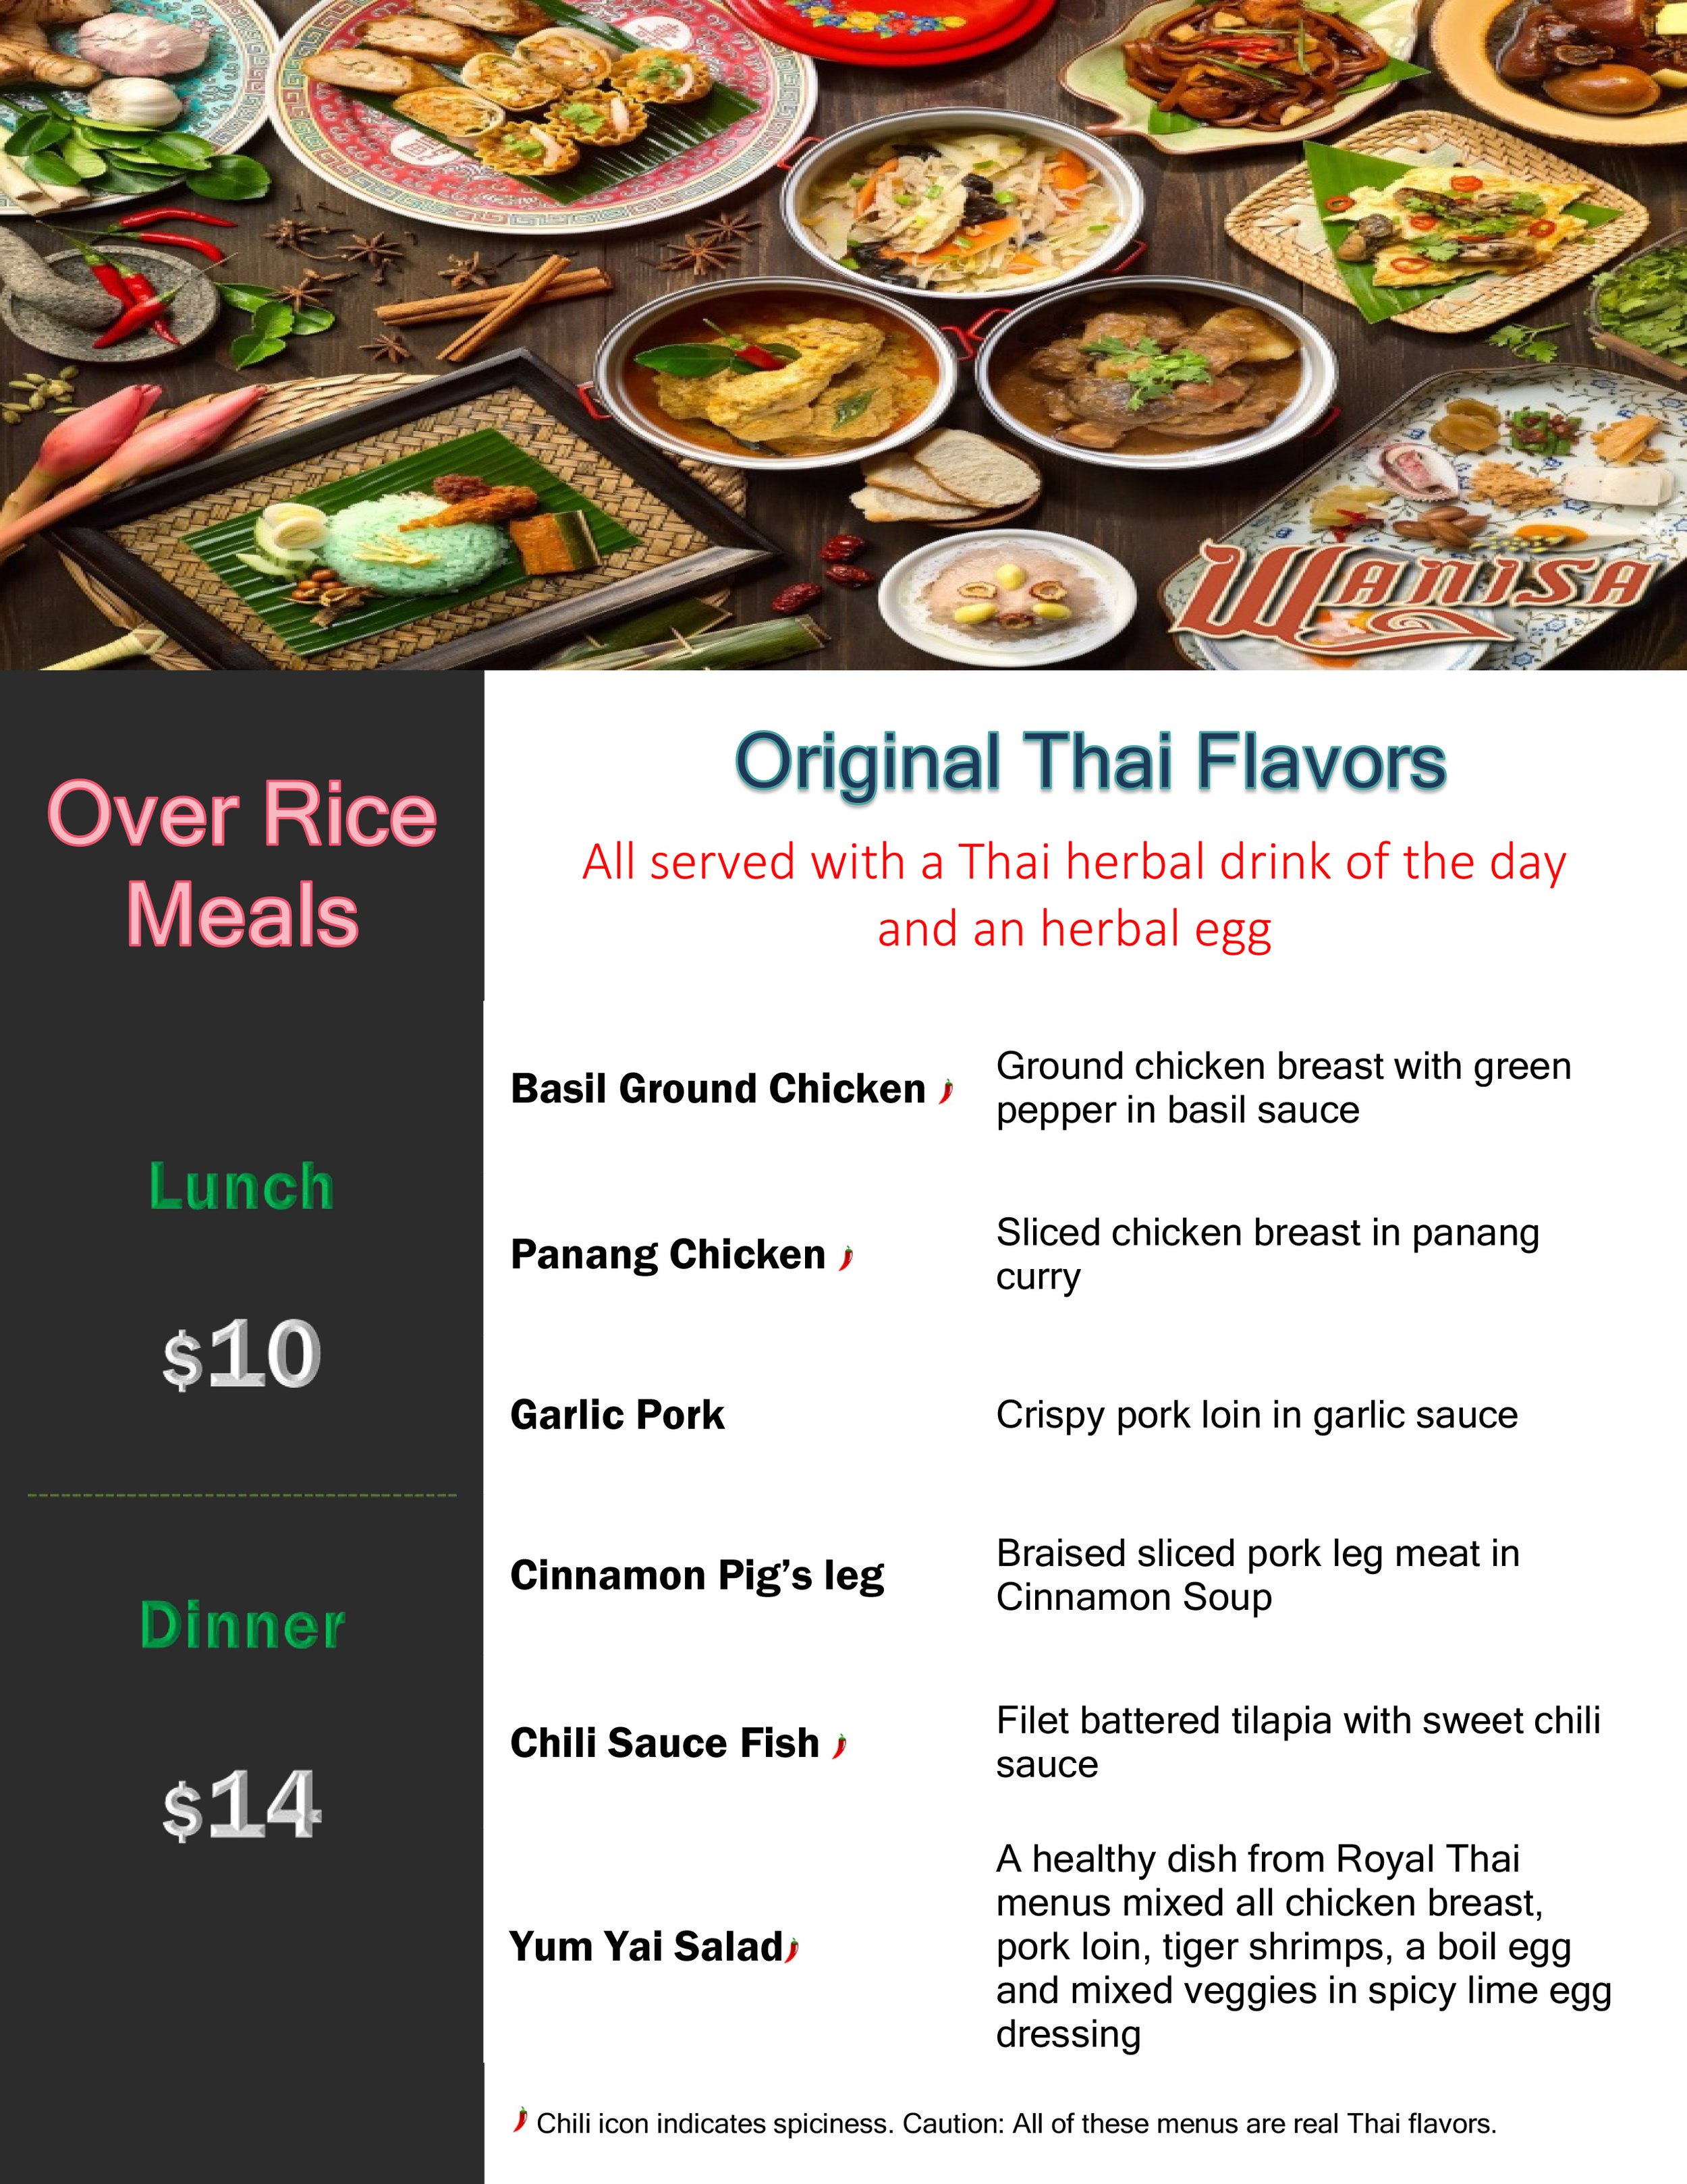 Over Rice Menu 6.jpg